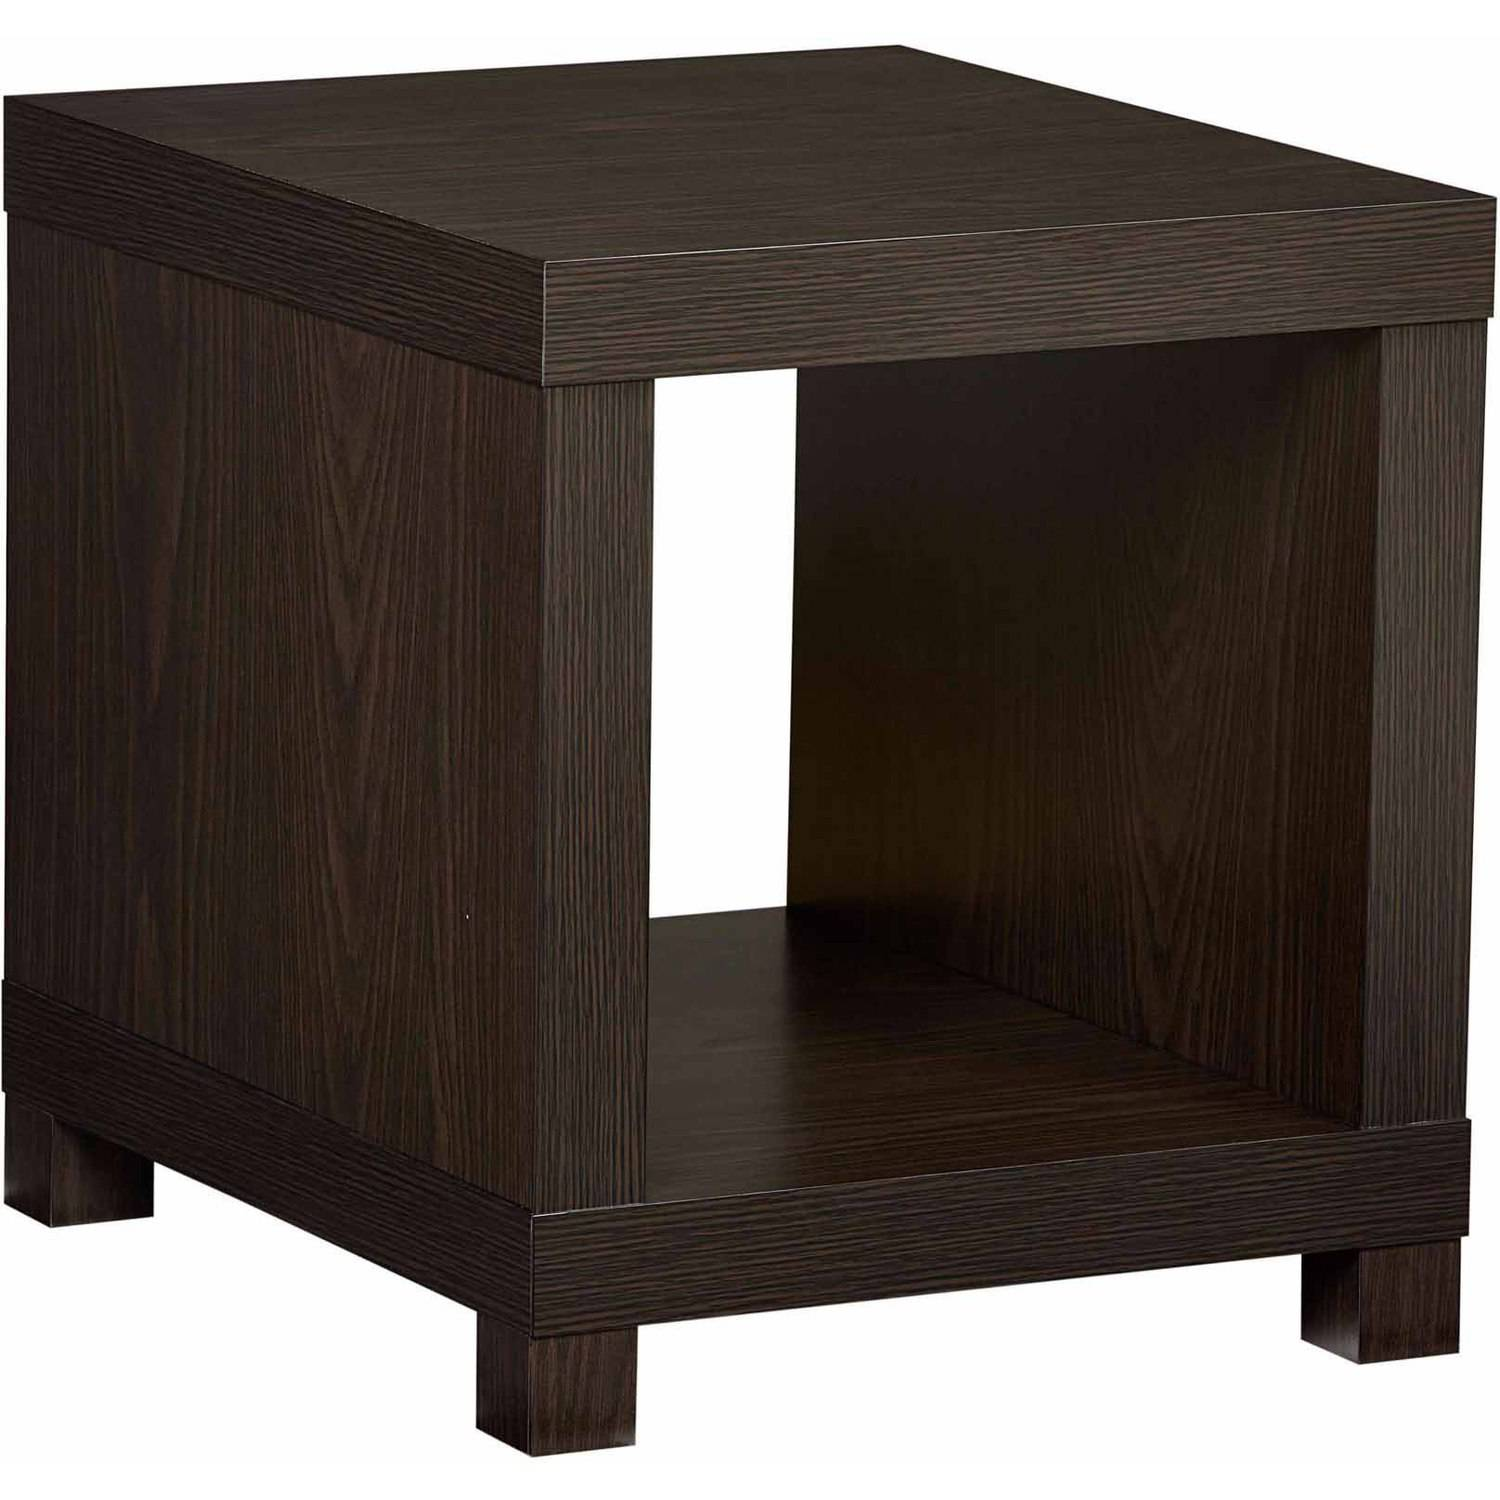 Better Homes U0026 Gardens Accent Table, Multiple Colors   Walmart.com